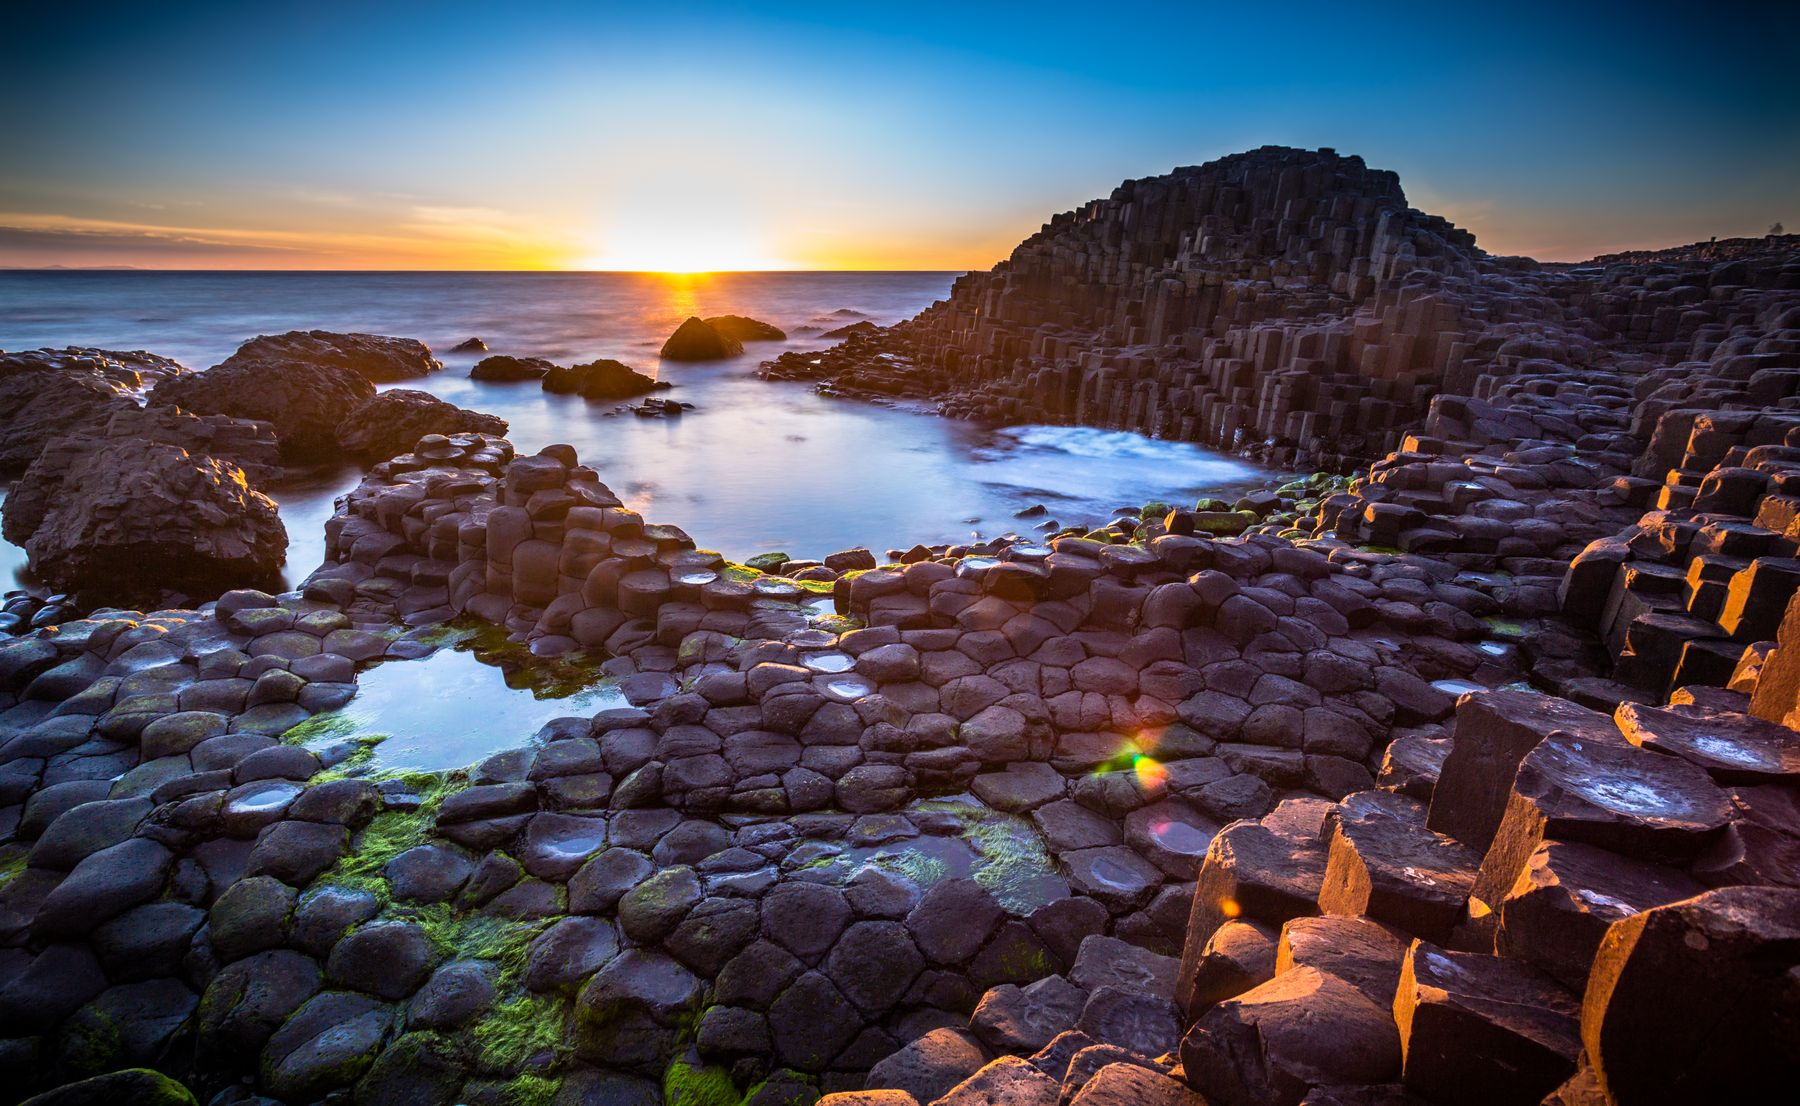 Belfast coastal view of Giant's Causeway at sunset